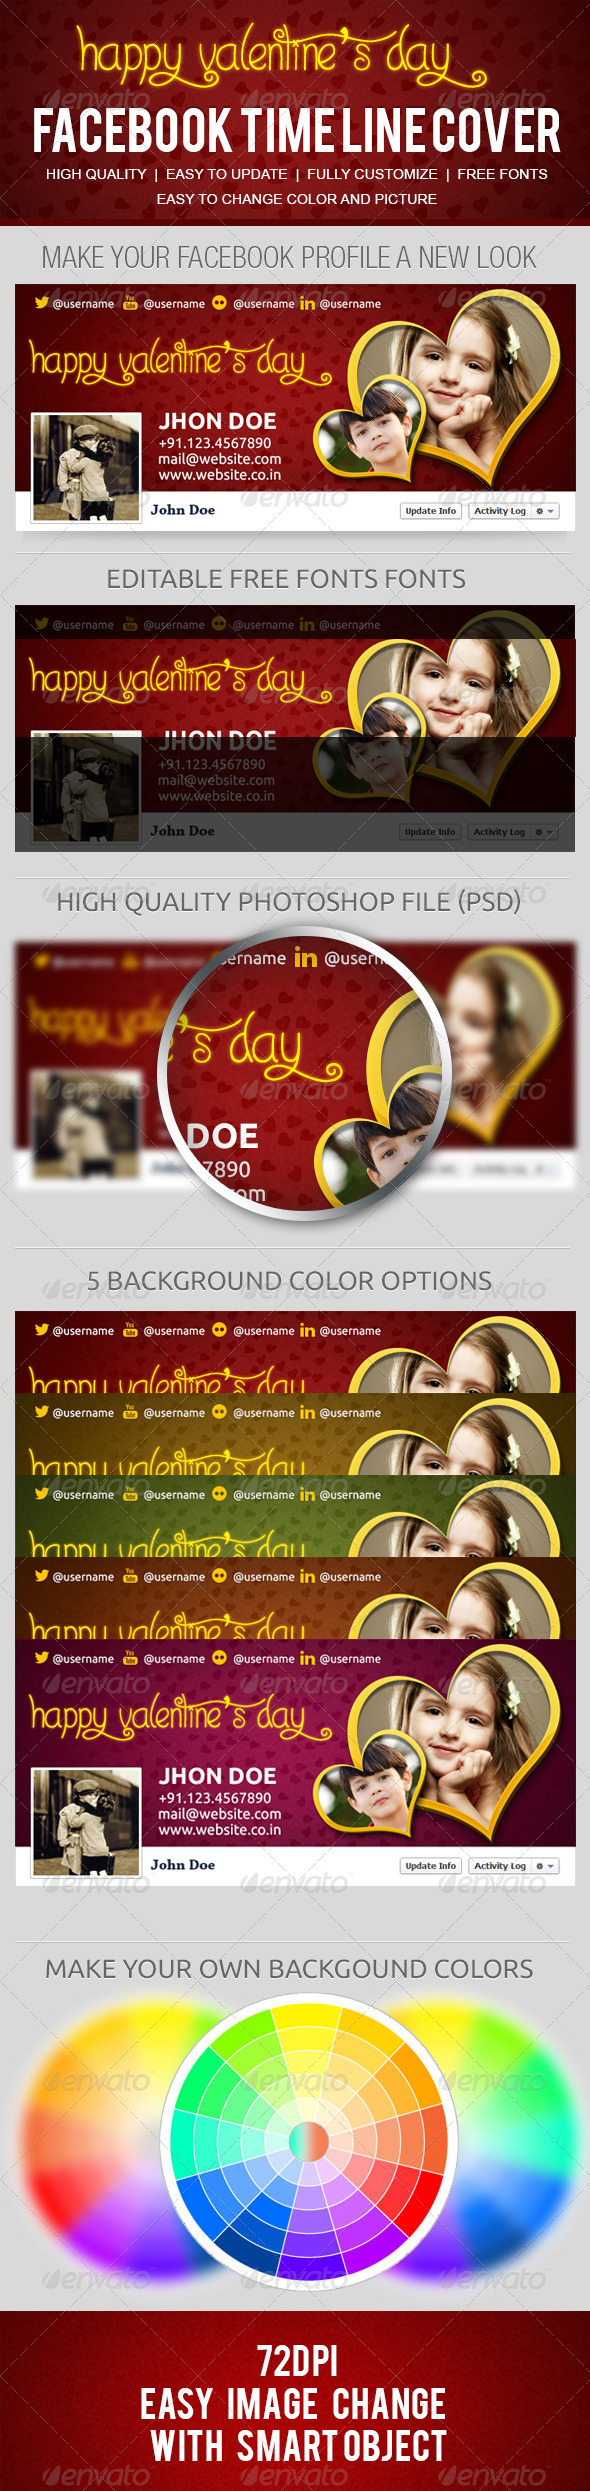 GraphicRiver Happy Valentines Fb Timeline Cover 3860893